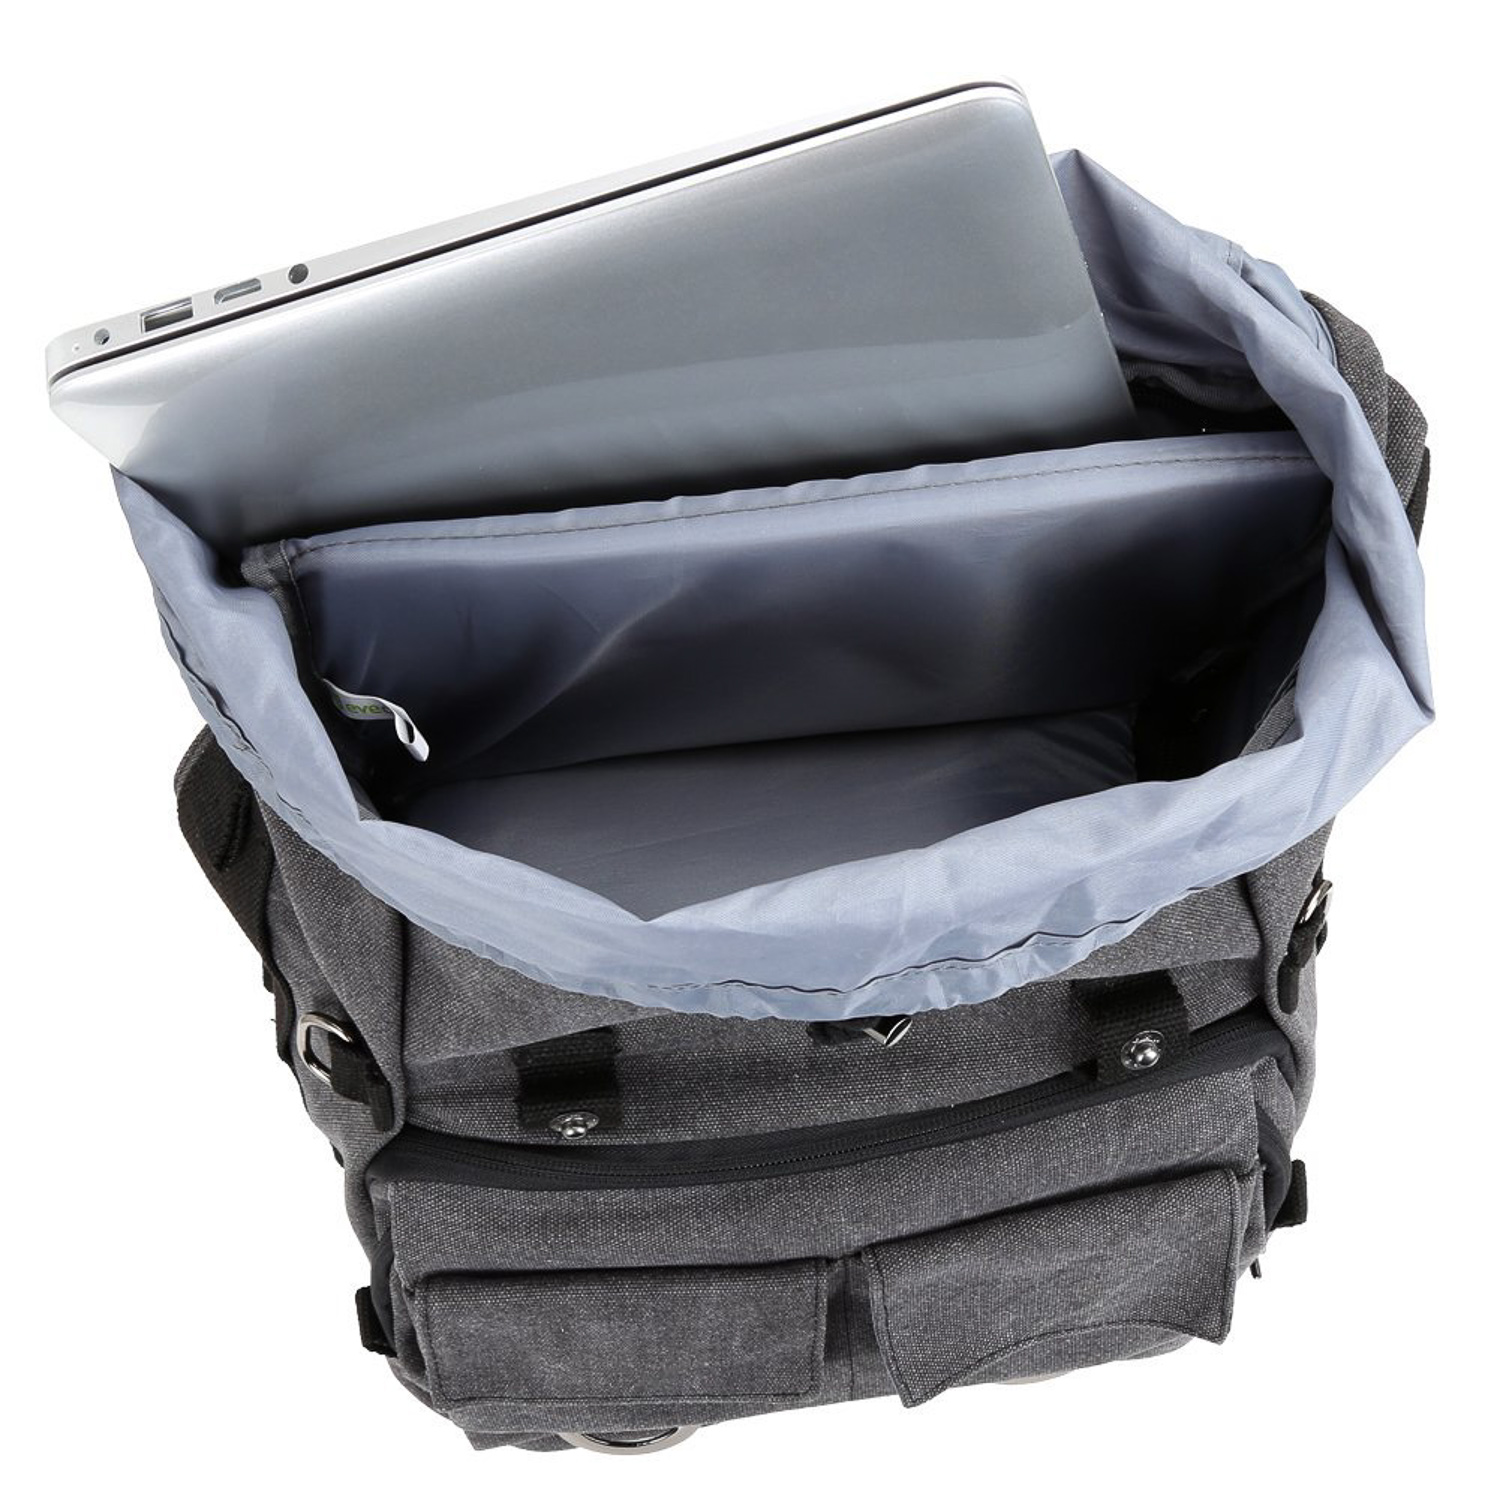 a1e2a40a47 The front of the backpack features a multitude of pockets and flaps